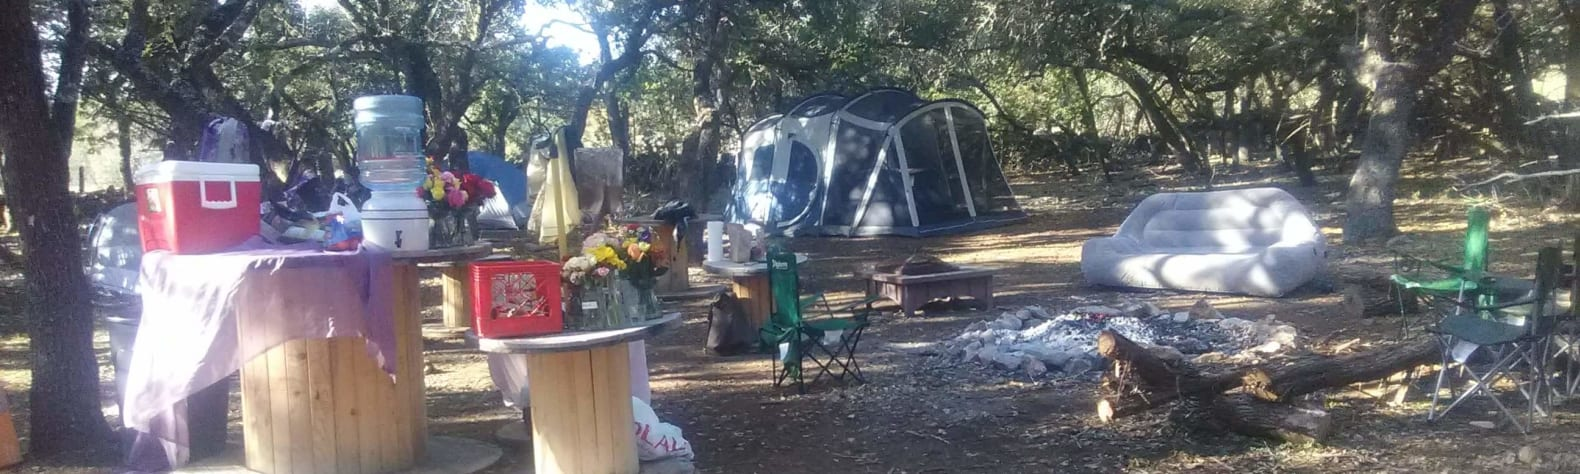 High Road Retreat & Campground